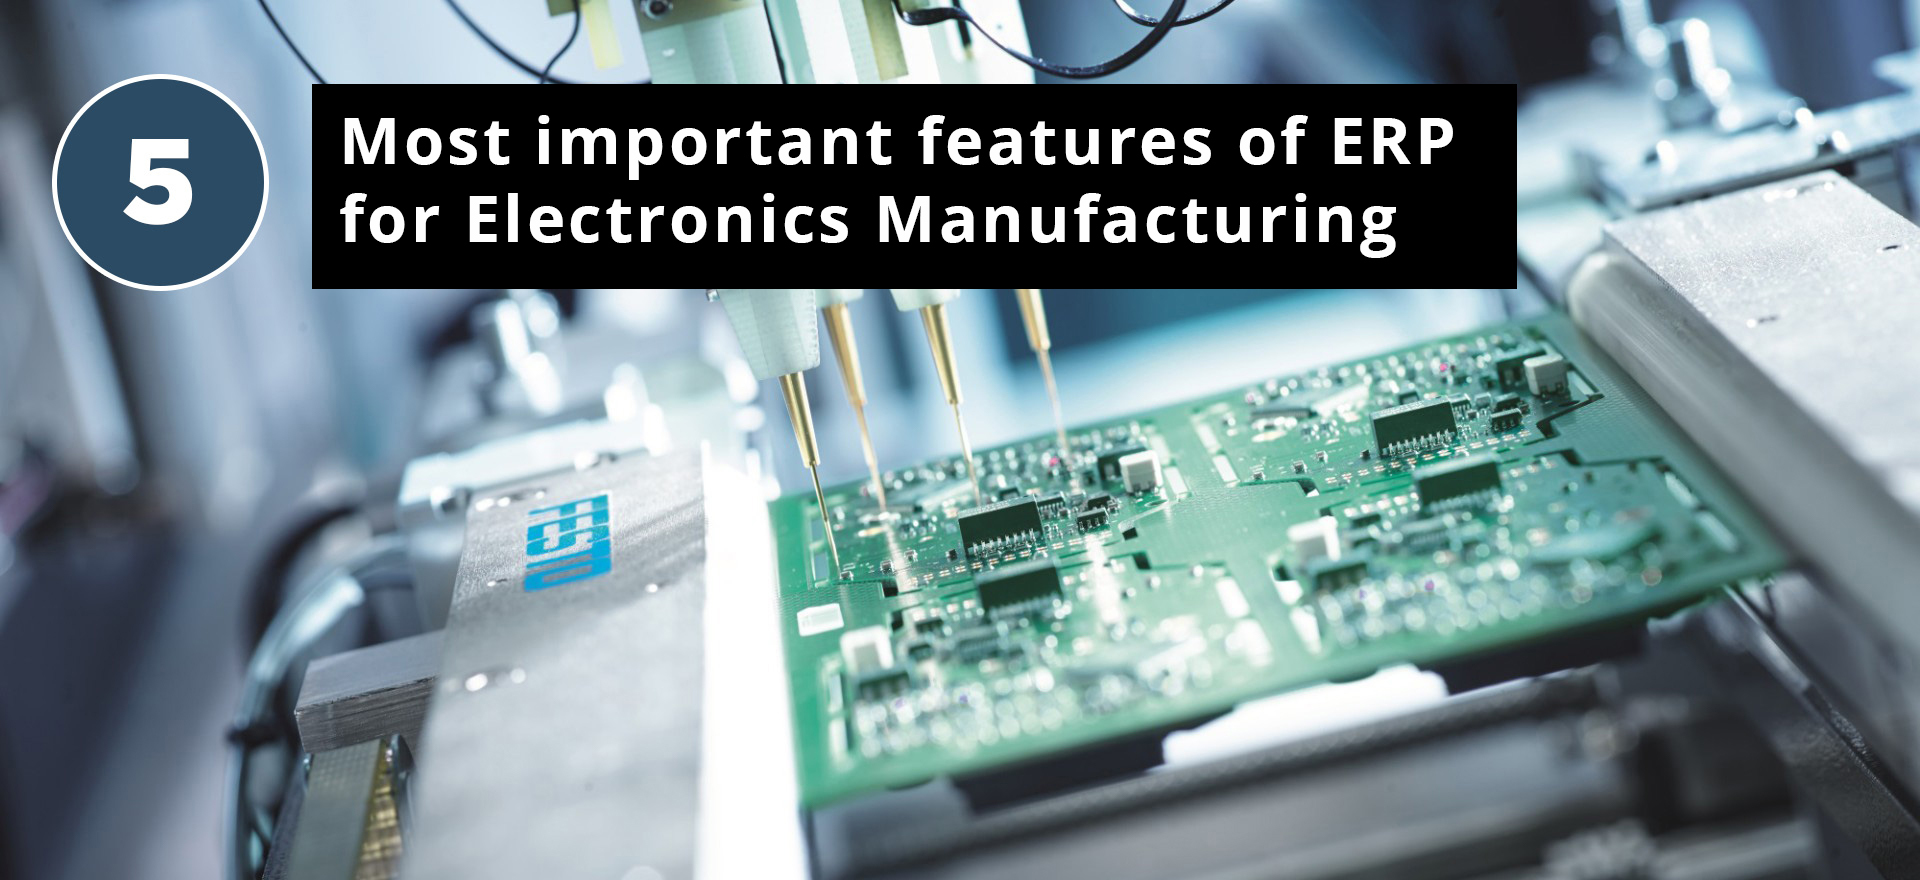 5 Most important features of ERP for Electronics Manufacturing